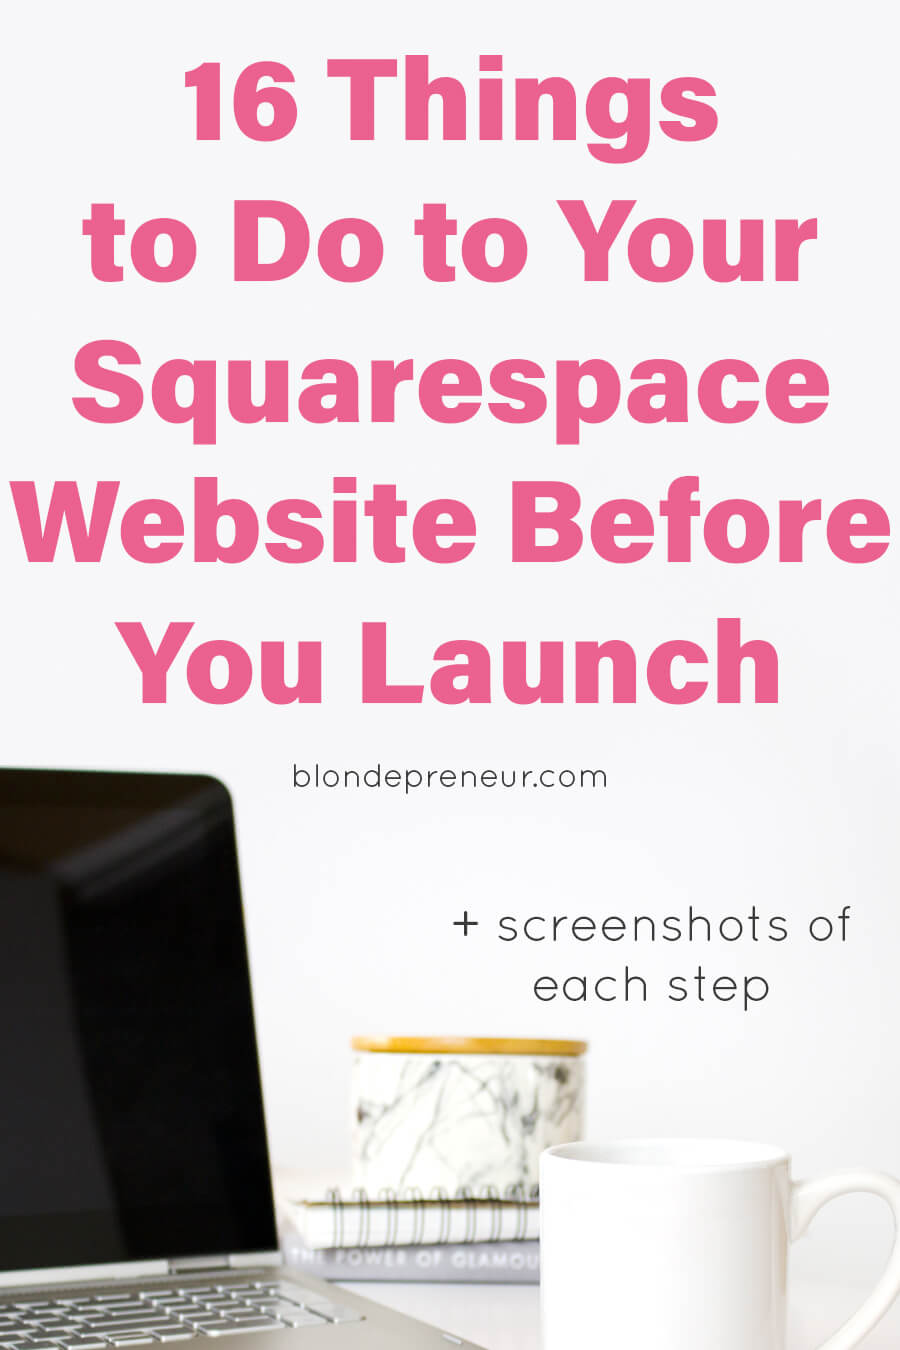 #squarespacetips Check out this website launch checklist with 16 things to do to your Squarespace website before you launch! Most of these tips are things people either forget or don't even know about. Follow these easy steps to make sure your website is fully functioning before you launch it out into the entrepreneur world. I included screenshots of each step so you know exactly what you are doing every step of the way!